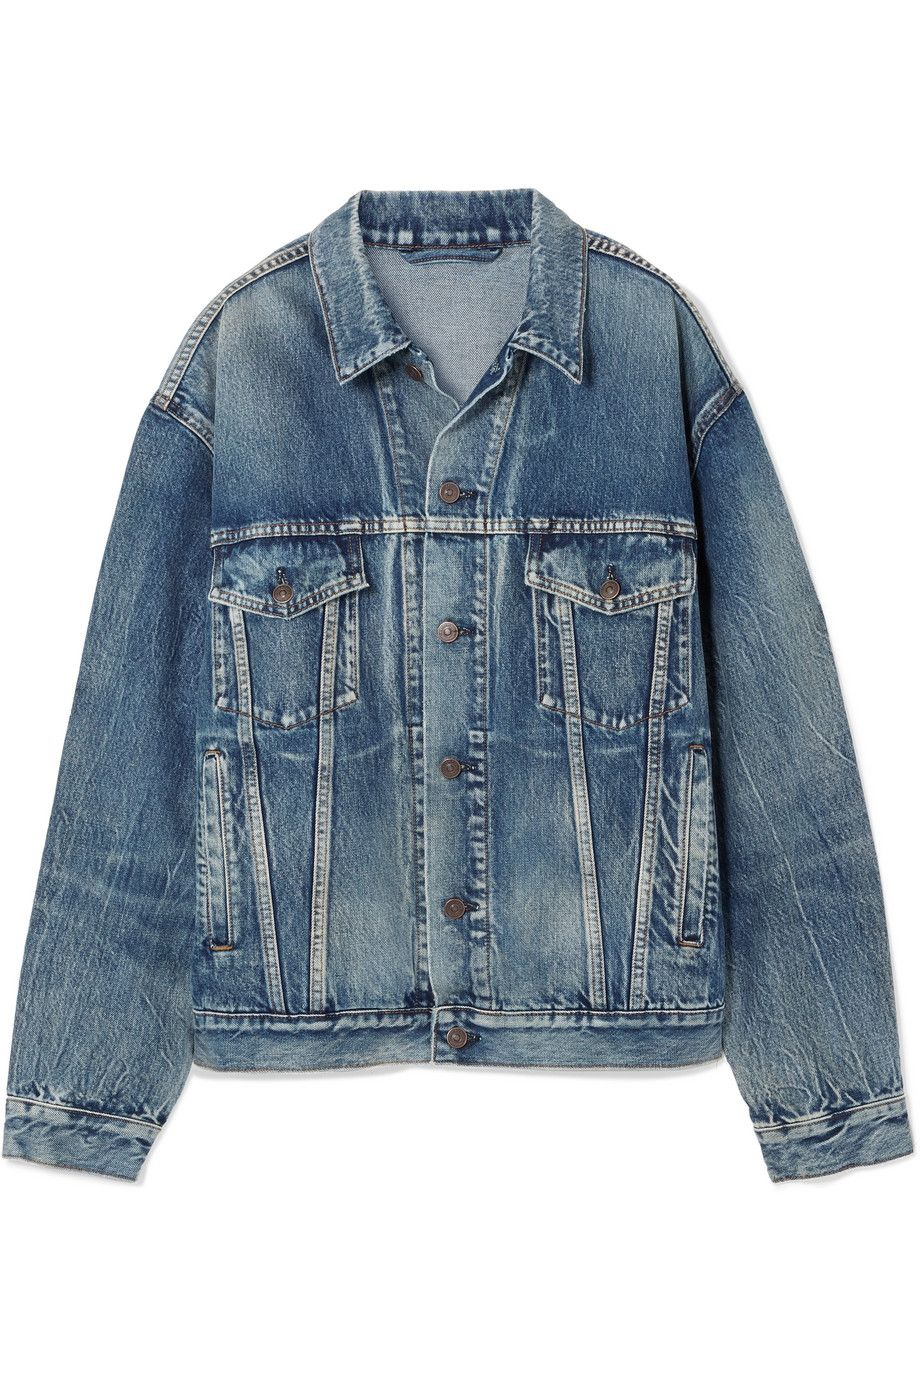 Net-A-Porter x Balenciaga Like A Man oversized printed denim jacket